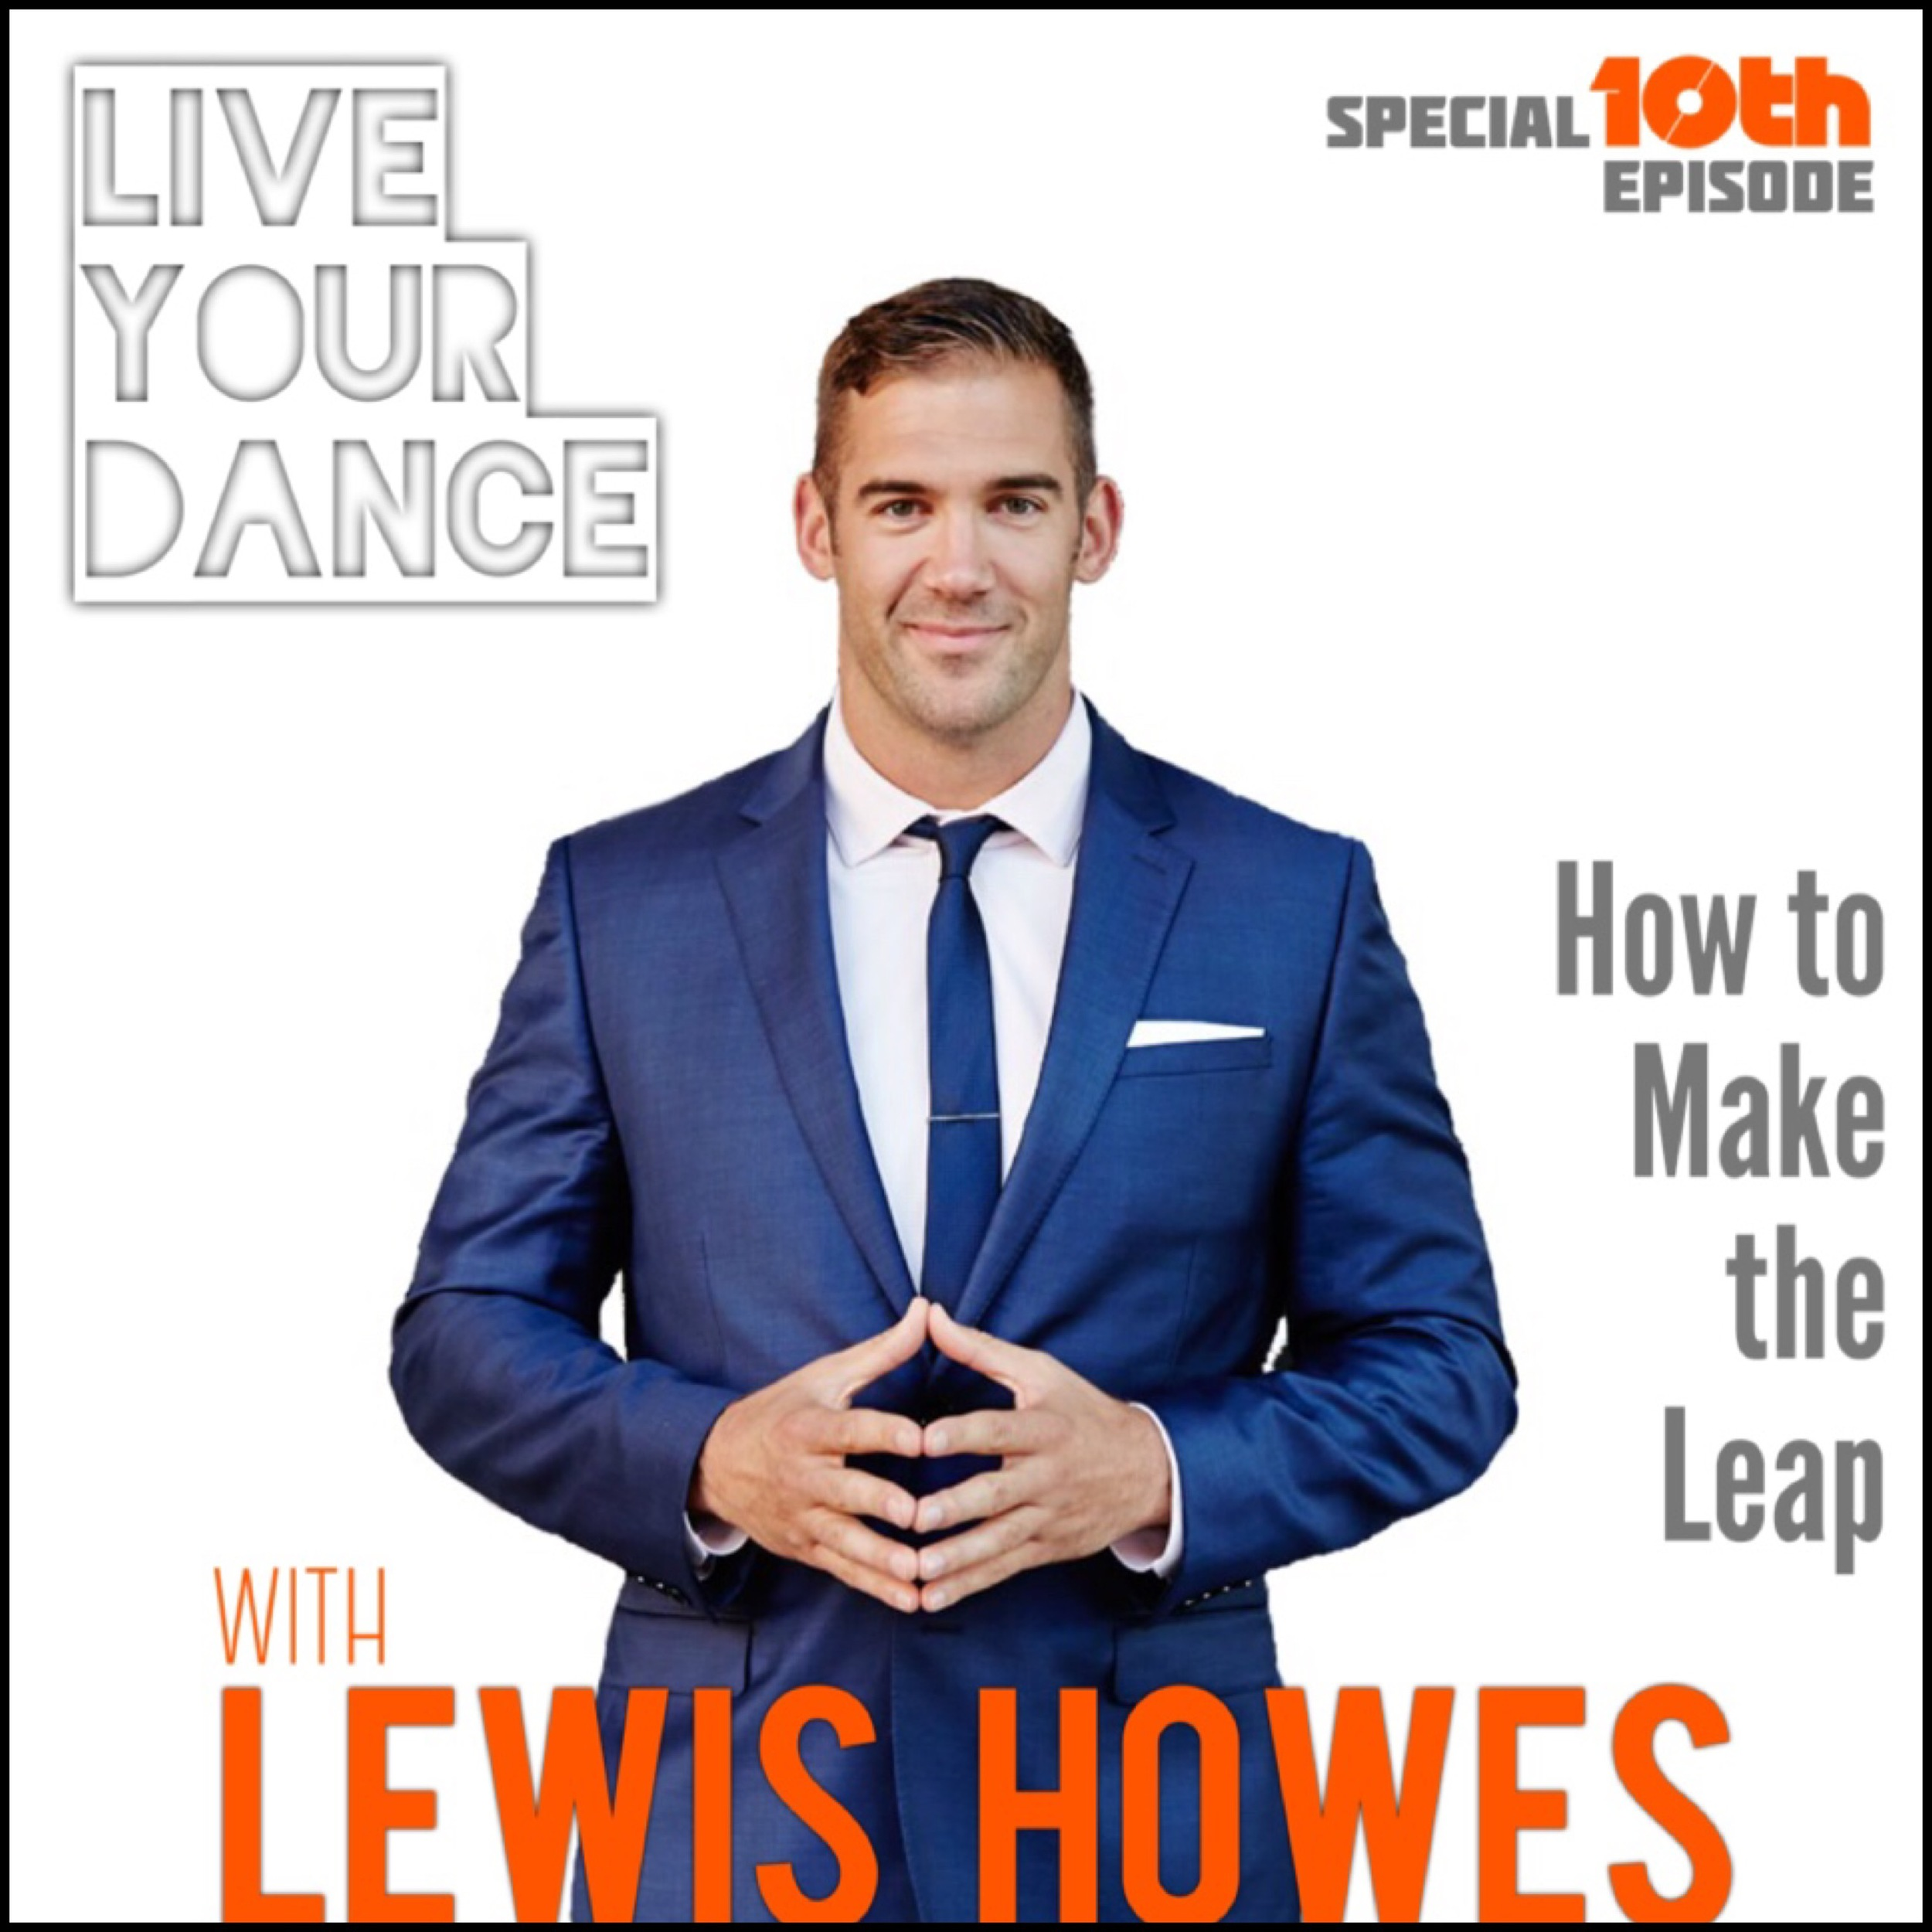 010_Live-Your-Dance_Lewis-Howes